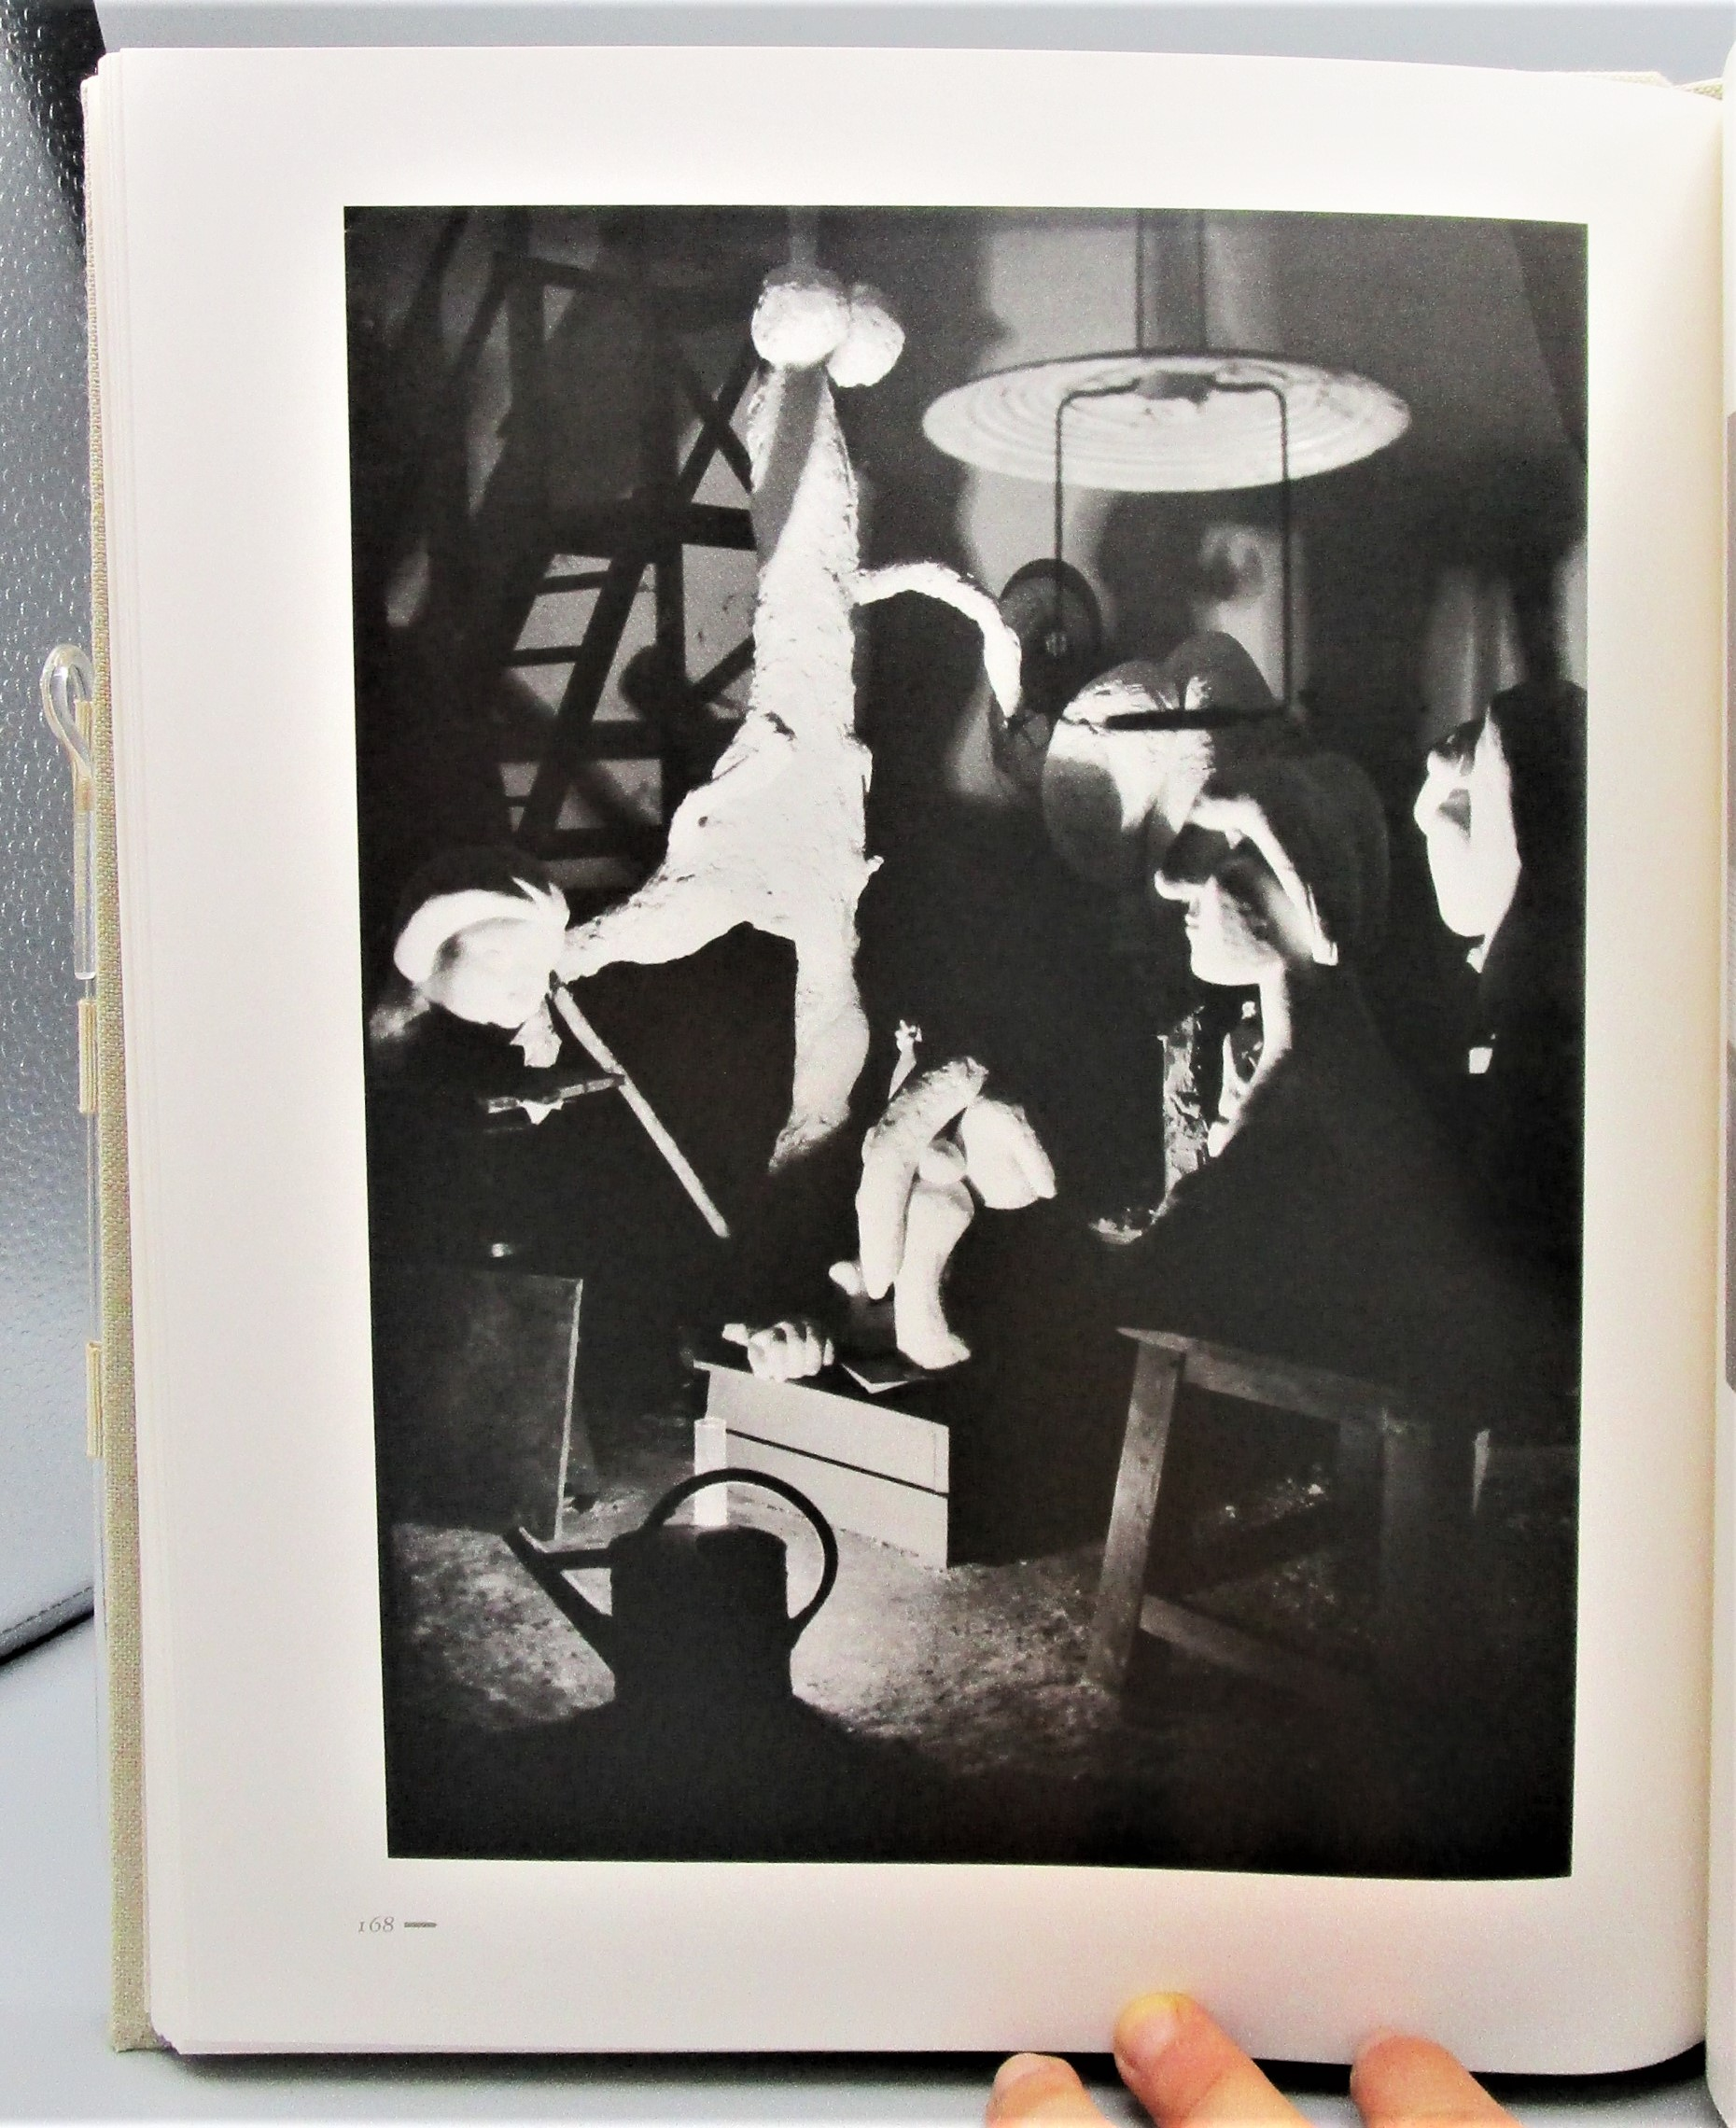 BRASSAI: ARTISTS OF MY LIFE - 1982 [Signed Limited Edition] *signed photogravure*